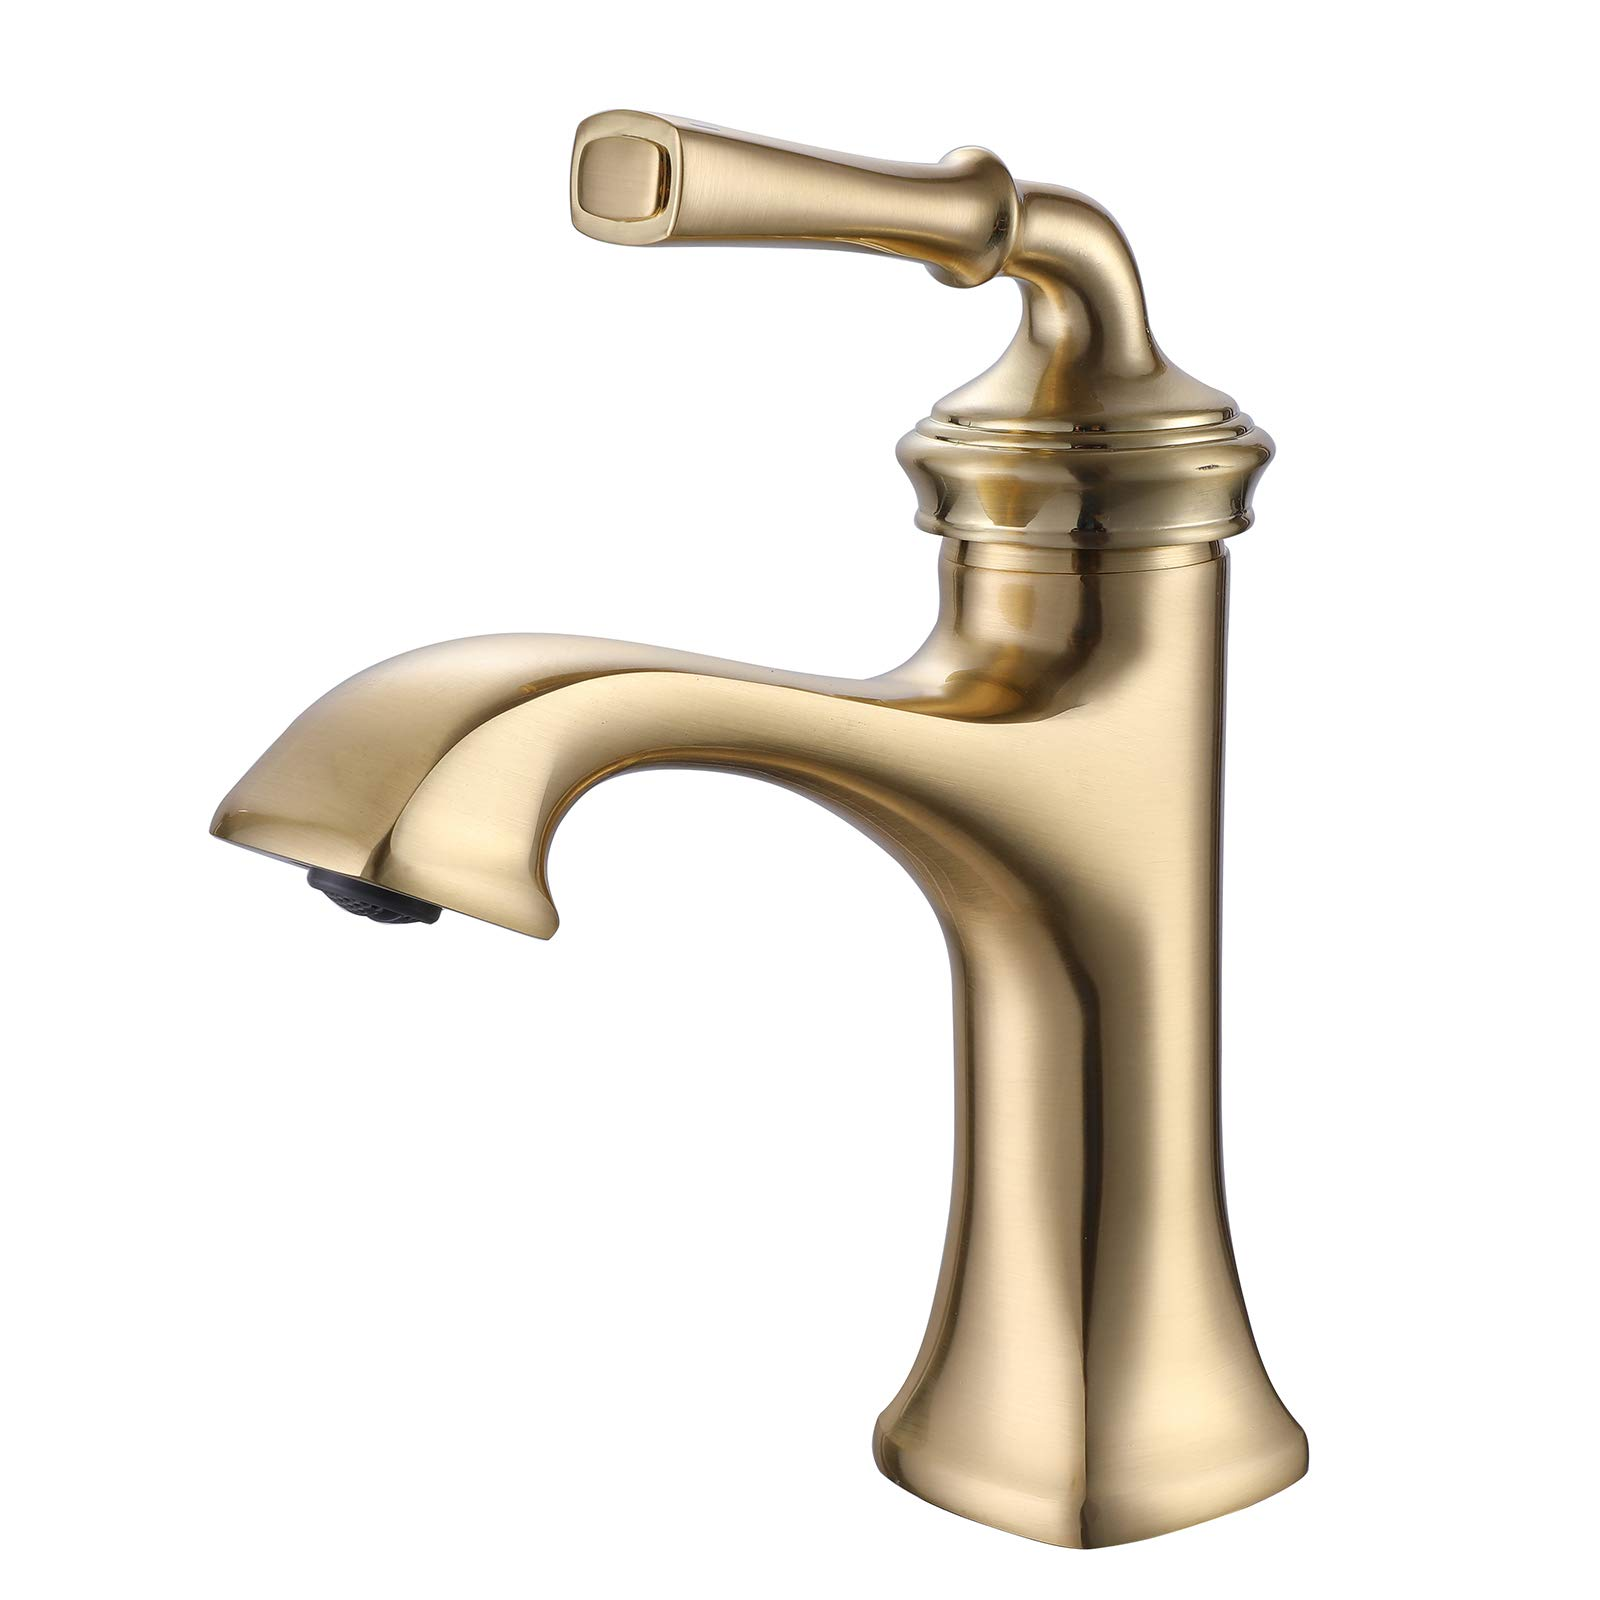 Brushed Gold Farmhouse Bathroom Faucet for Vanity Sink, One Hole Single Handle Bathroom Sink Faucet, Deck Mounted, Solid Brass, RBROHANT RBF65007BG